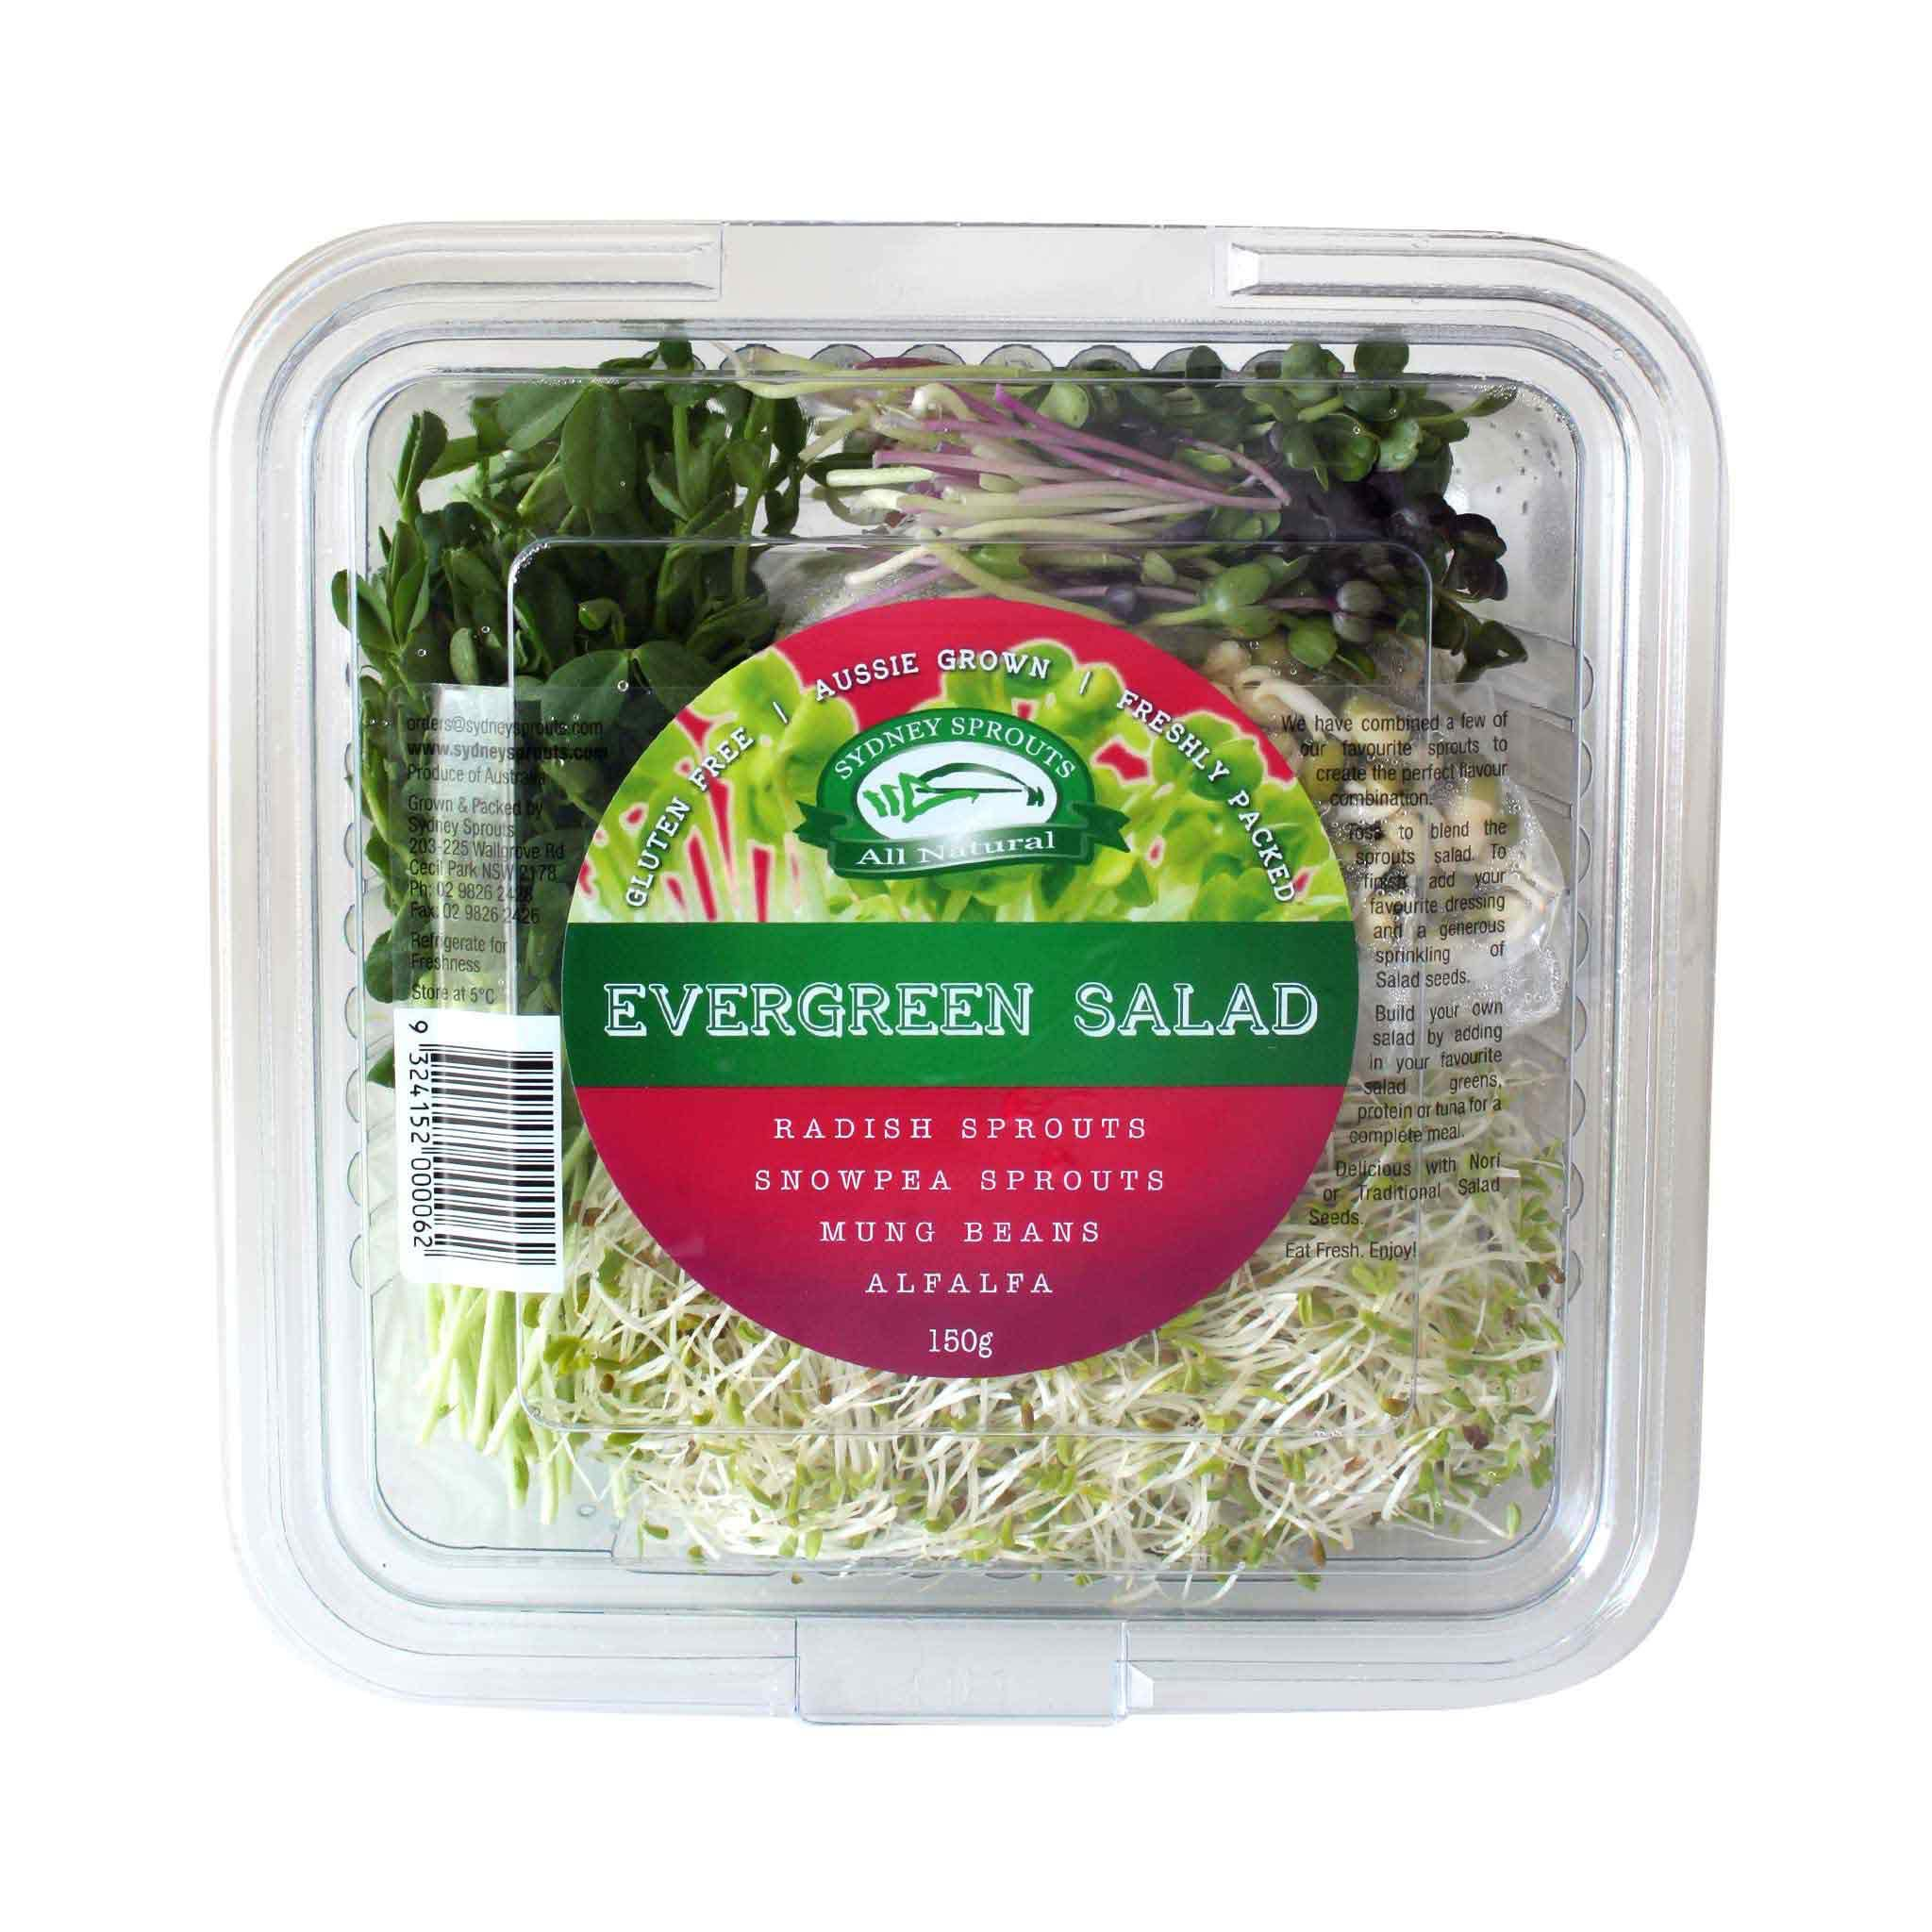 Evergreen Salad